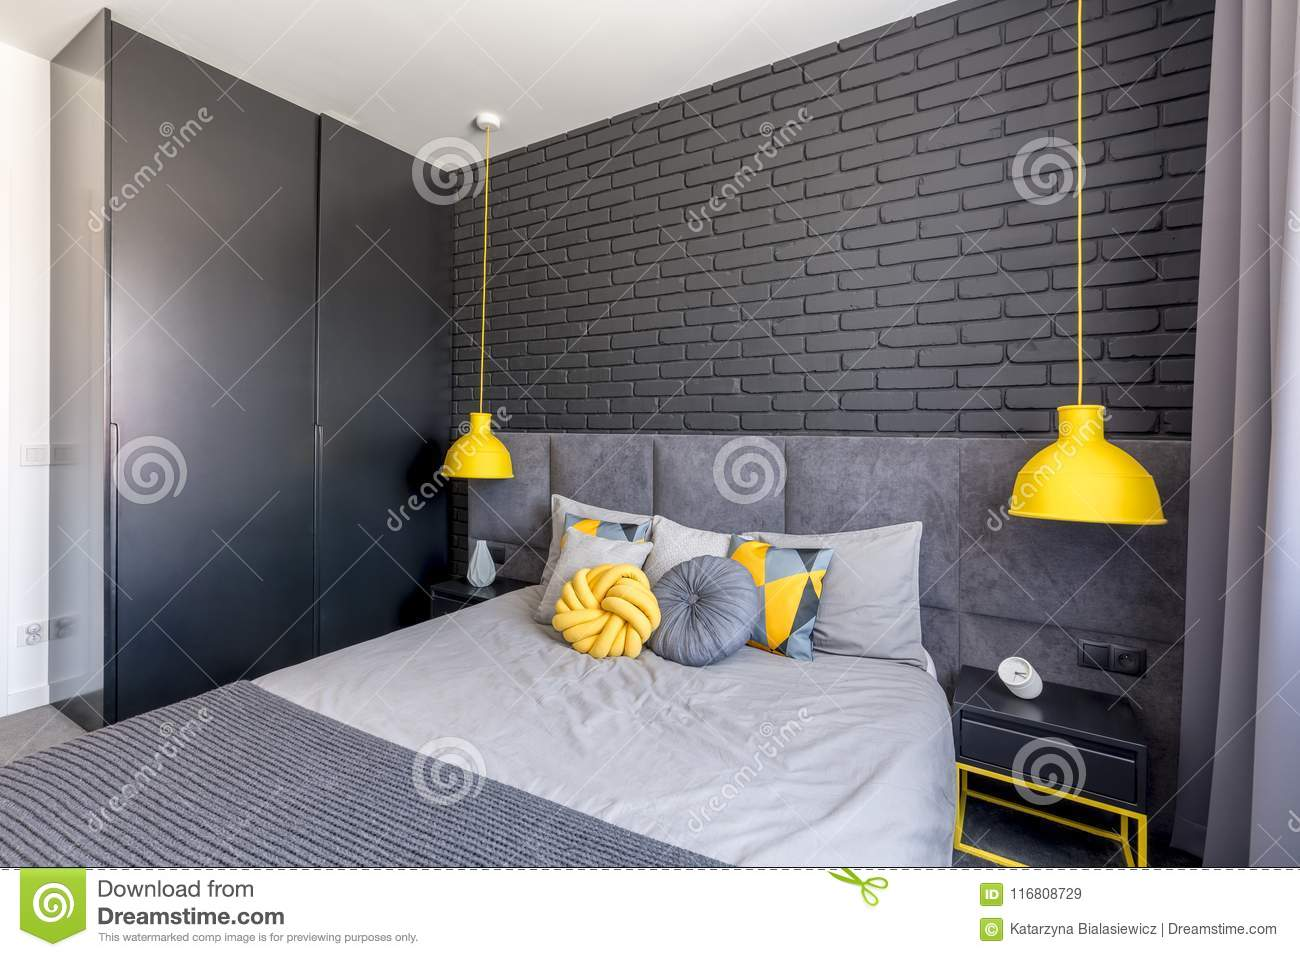 Strange Bedroom With Yellow Accents Stock Image Image Of Wardrobe Home Interior And Landscaping Ferensignezvosmurscom